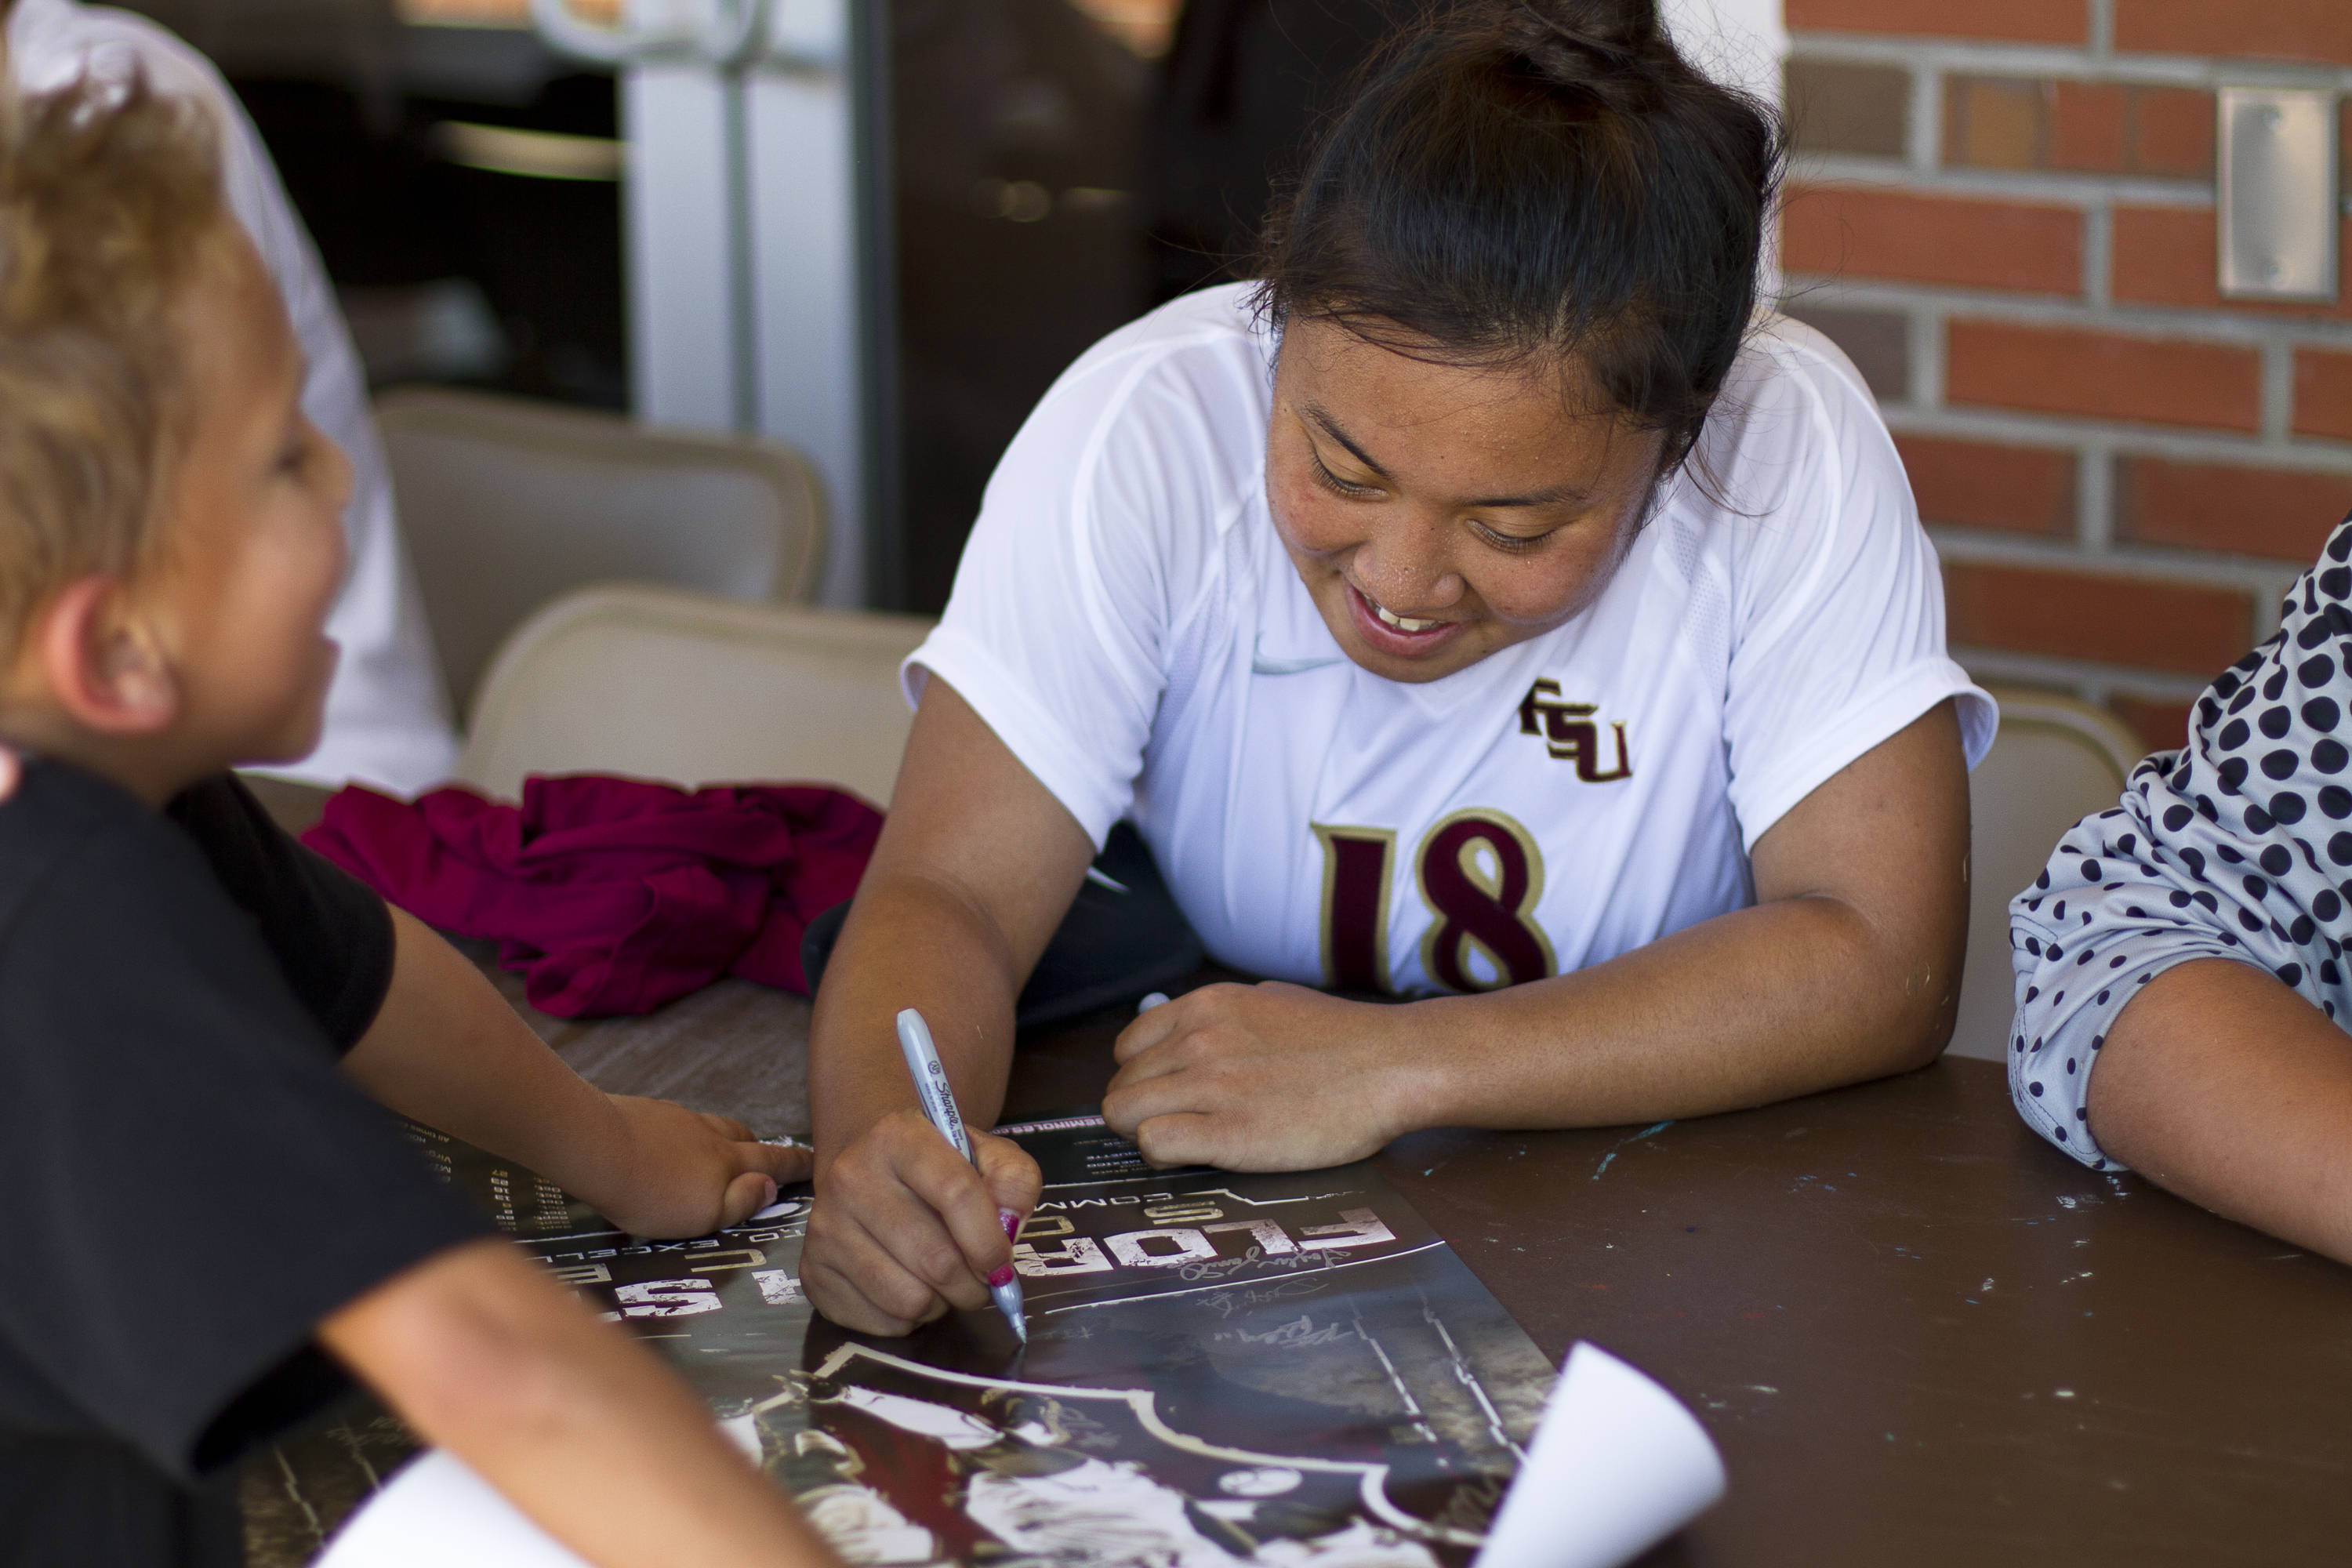 Hikaru Murakami (18) autographs a poster for a young fan after the game against North Florida.